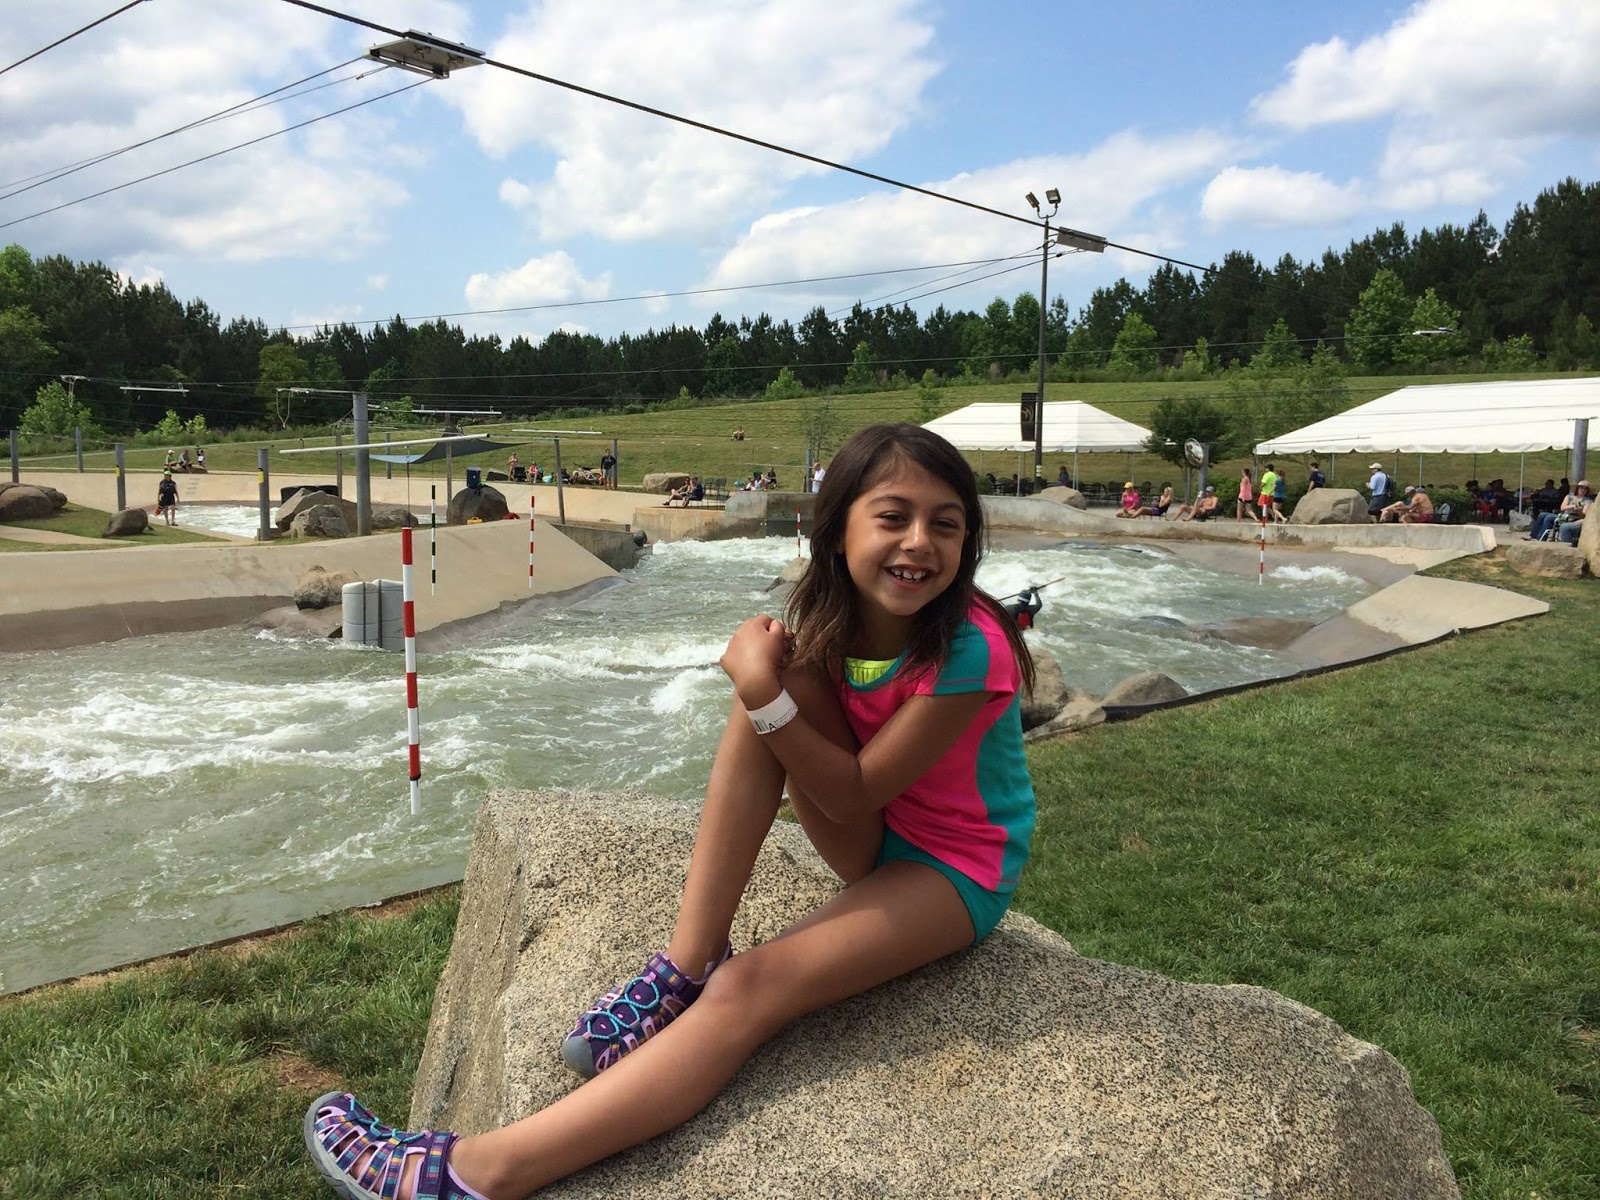 Vintage, Paint and more... National Whitewater Center in North Carolina